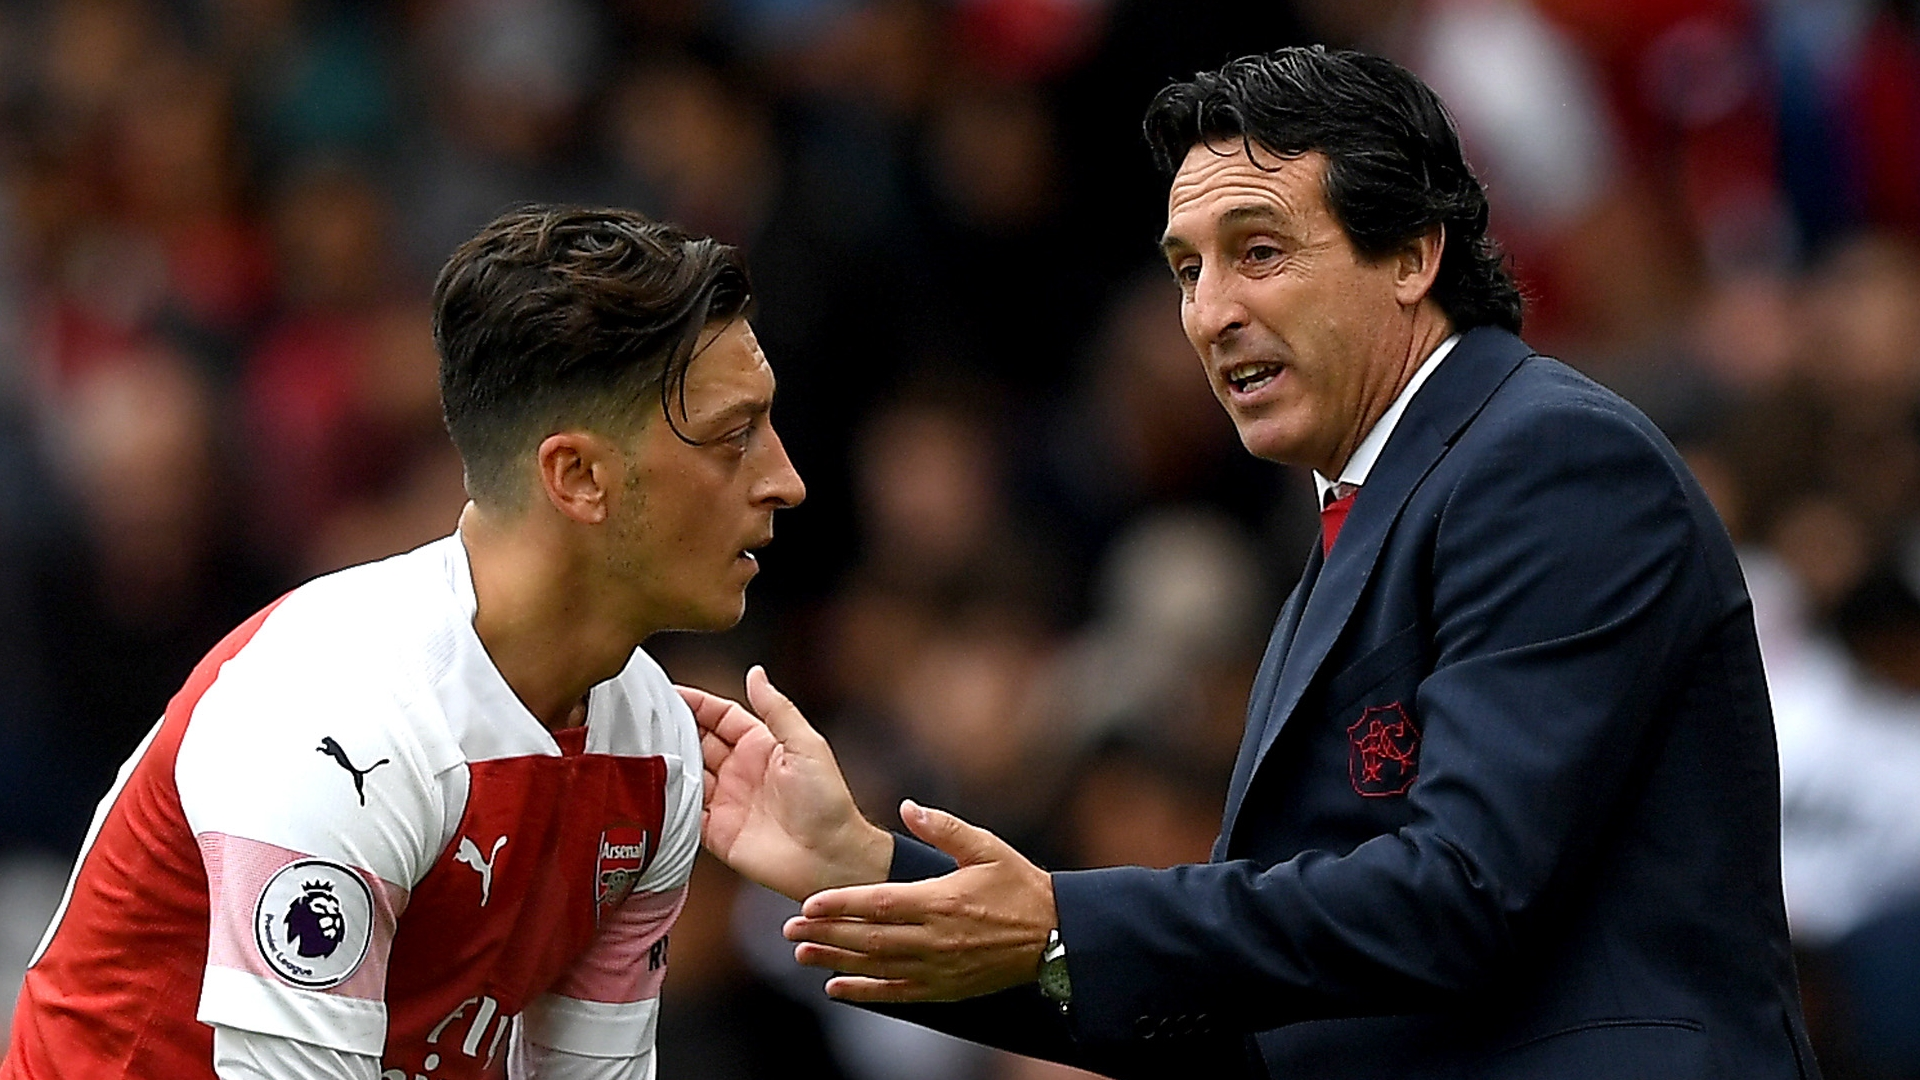 Mesut Ozil, Unai Emery, Arsenal